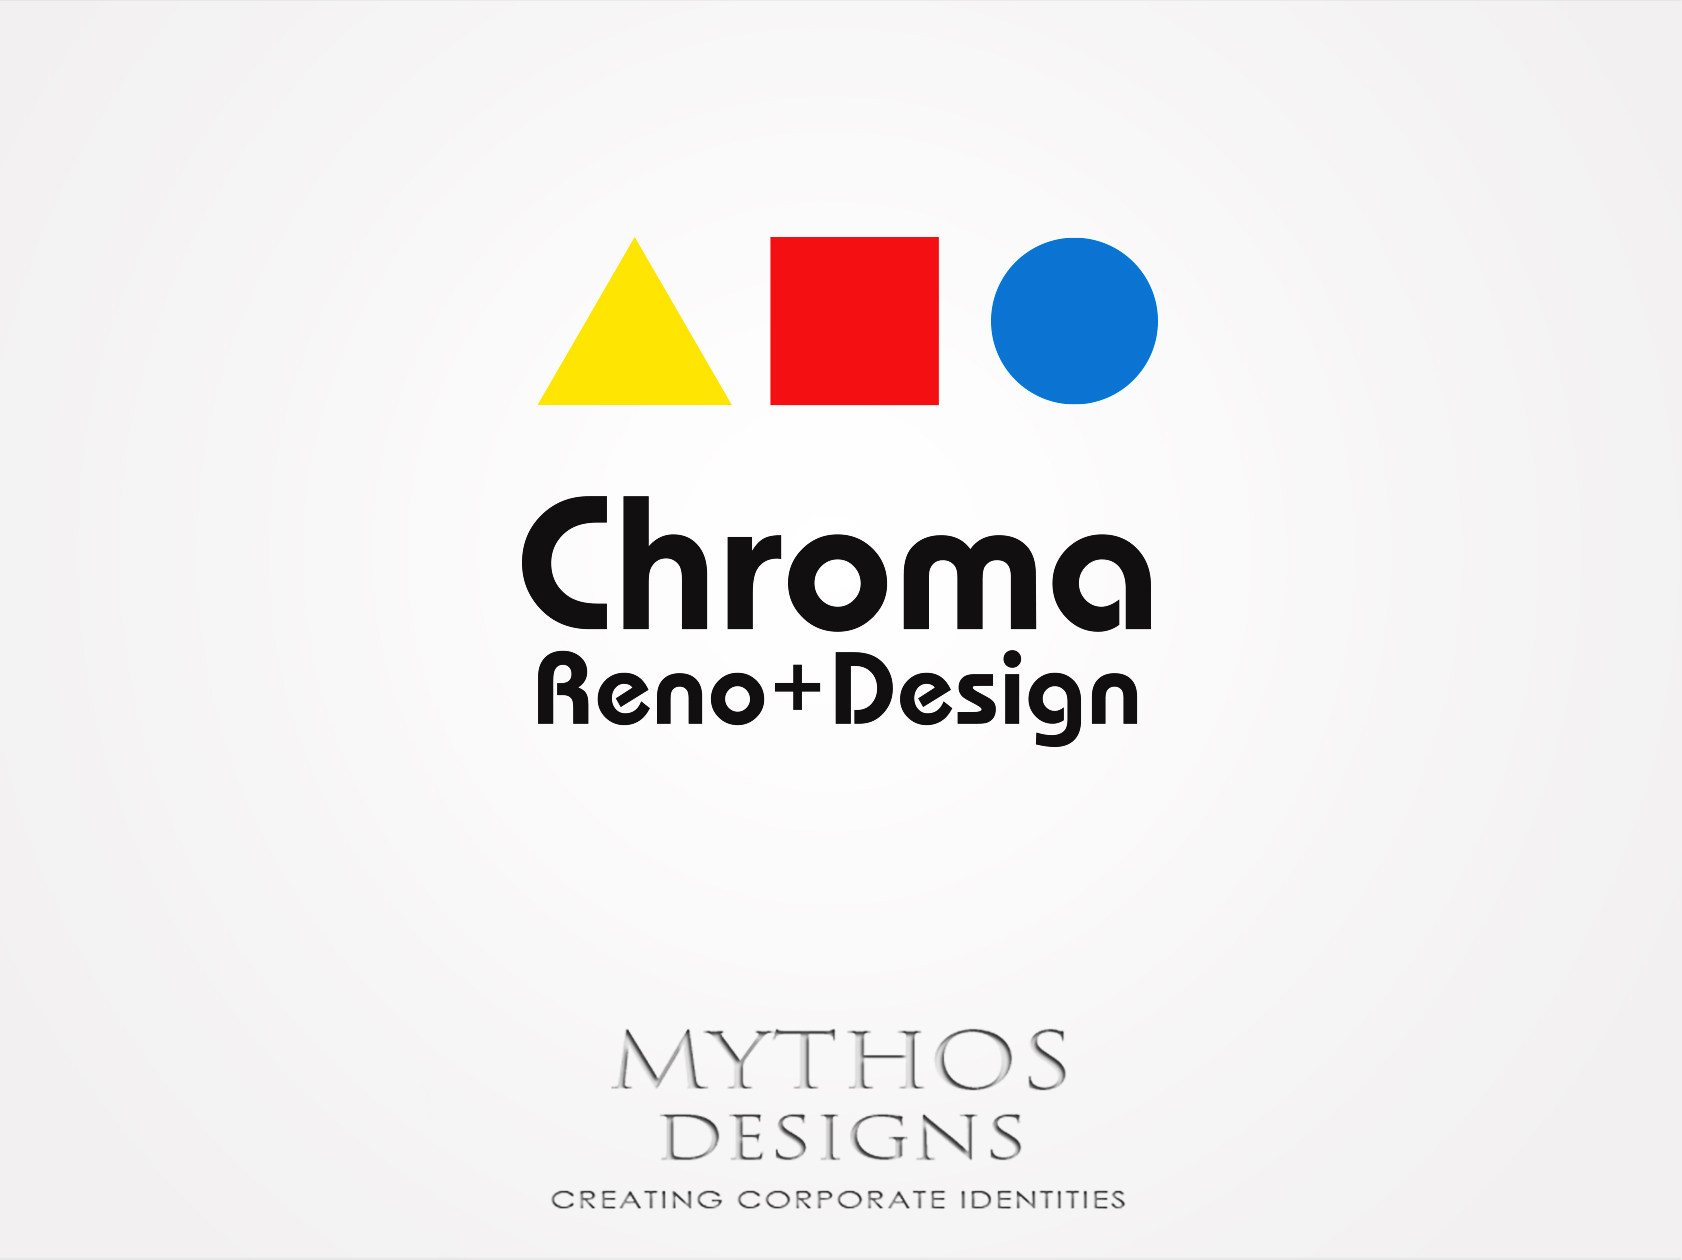 Logo Design by Mythos Designs - Entry No. 287 in the Logo Design Contest Inspiring Logo Design for Chroma Reno+Design.